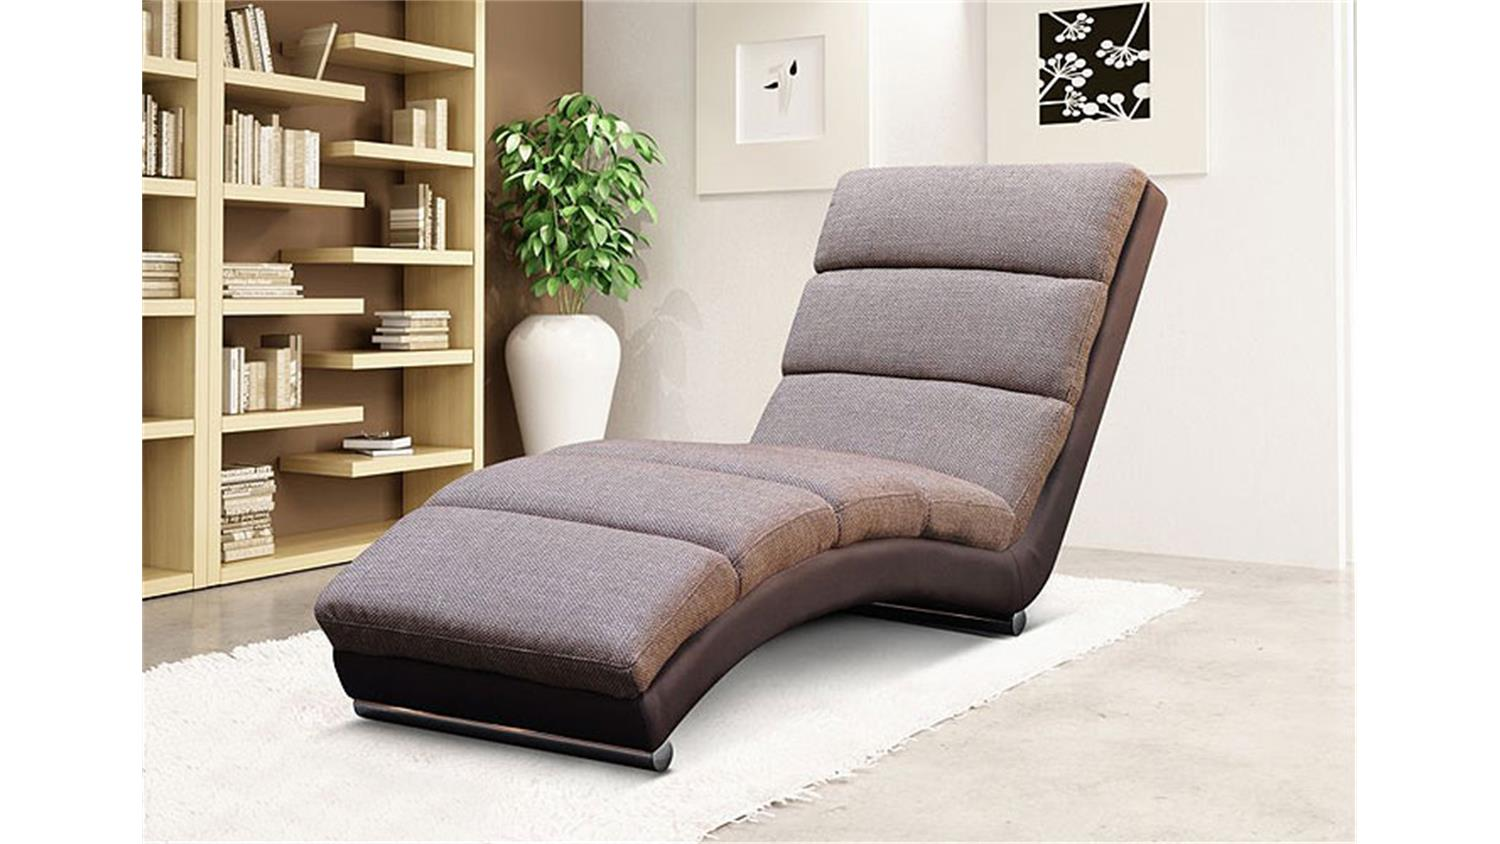 relaxliege holiday liege chaiselongue in braun. Black Bedroom Furniture Sets. Home Design Ideas